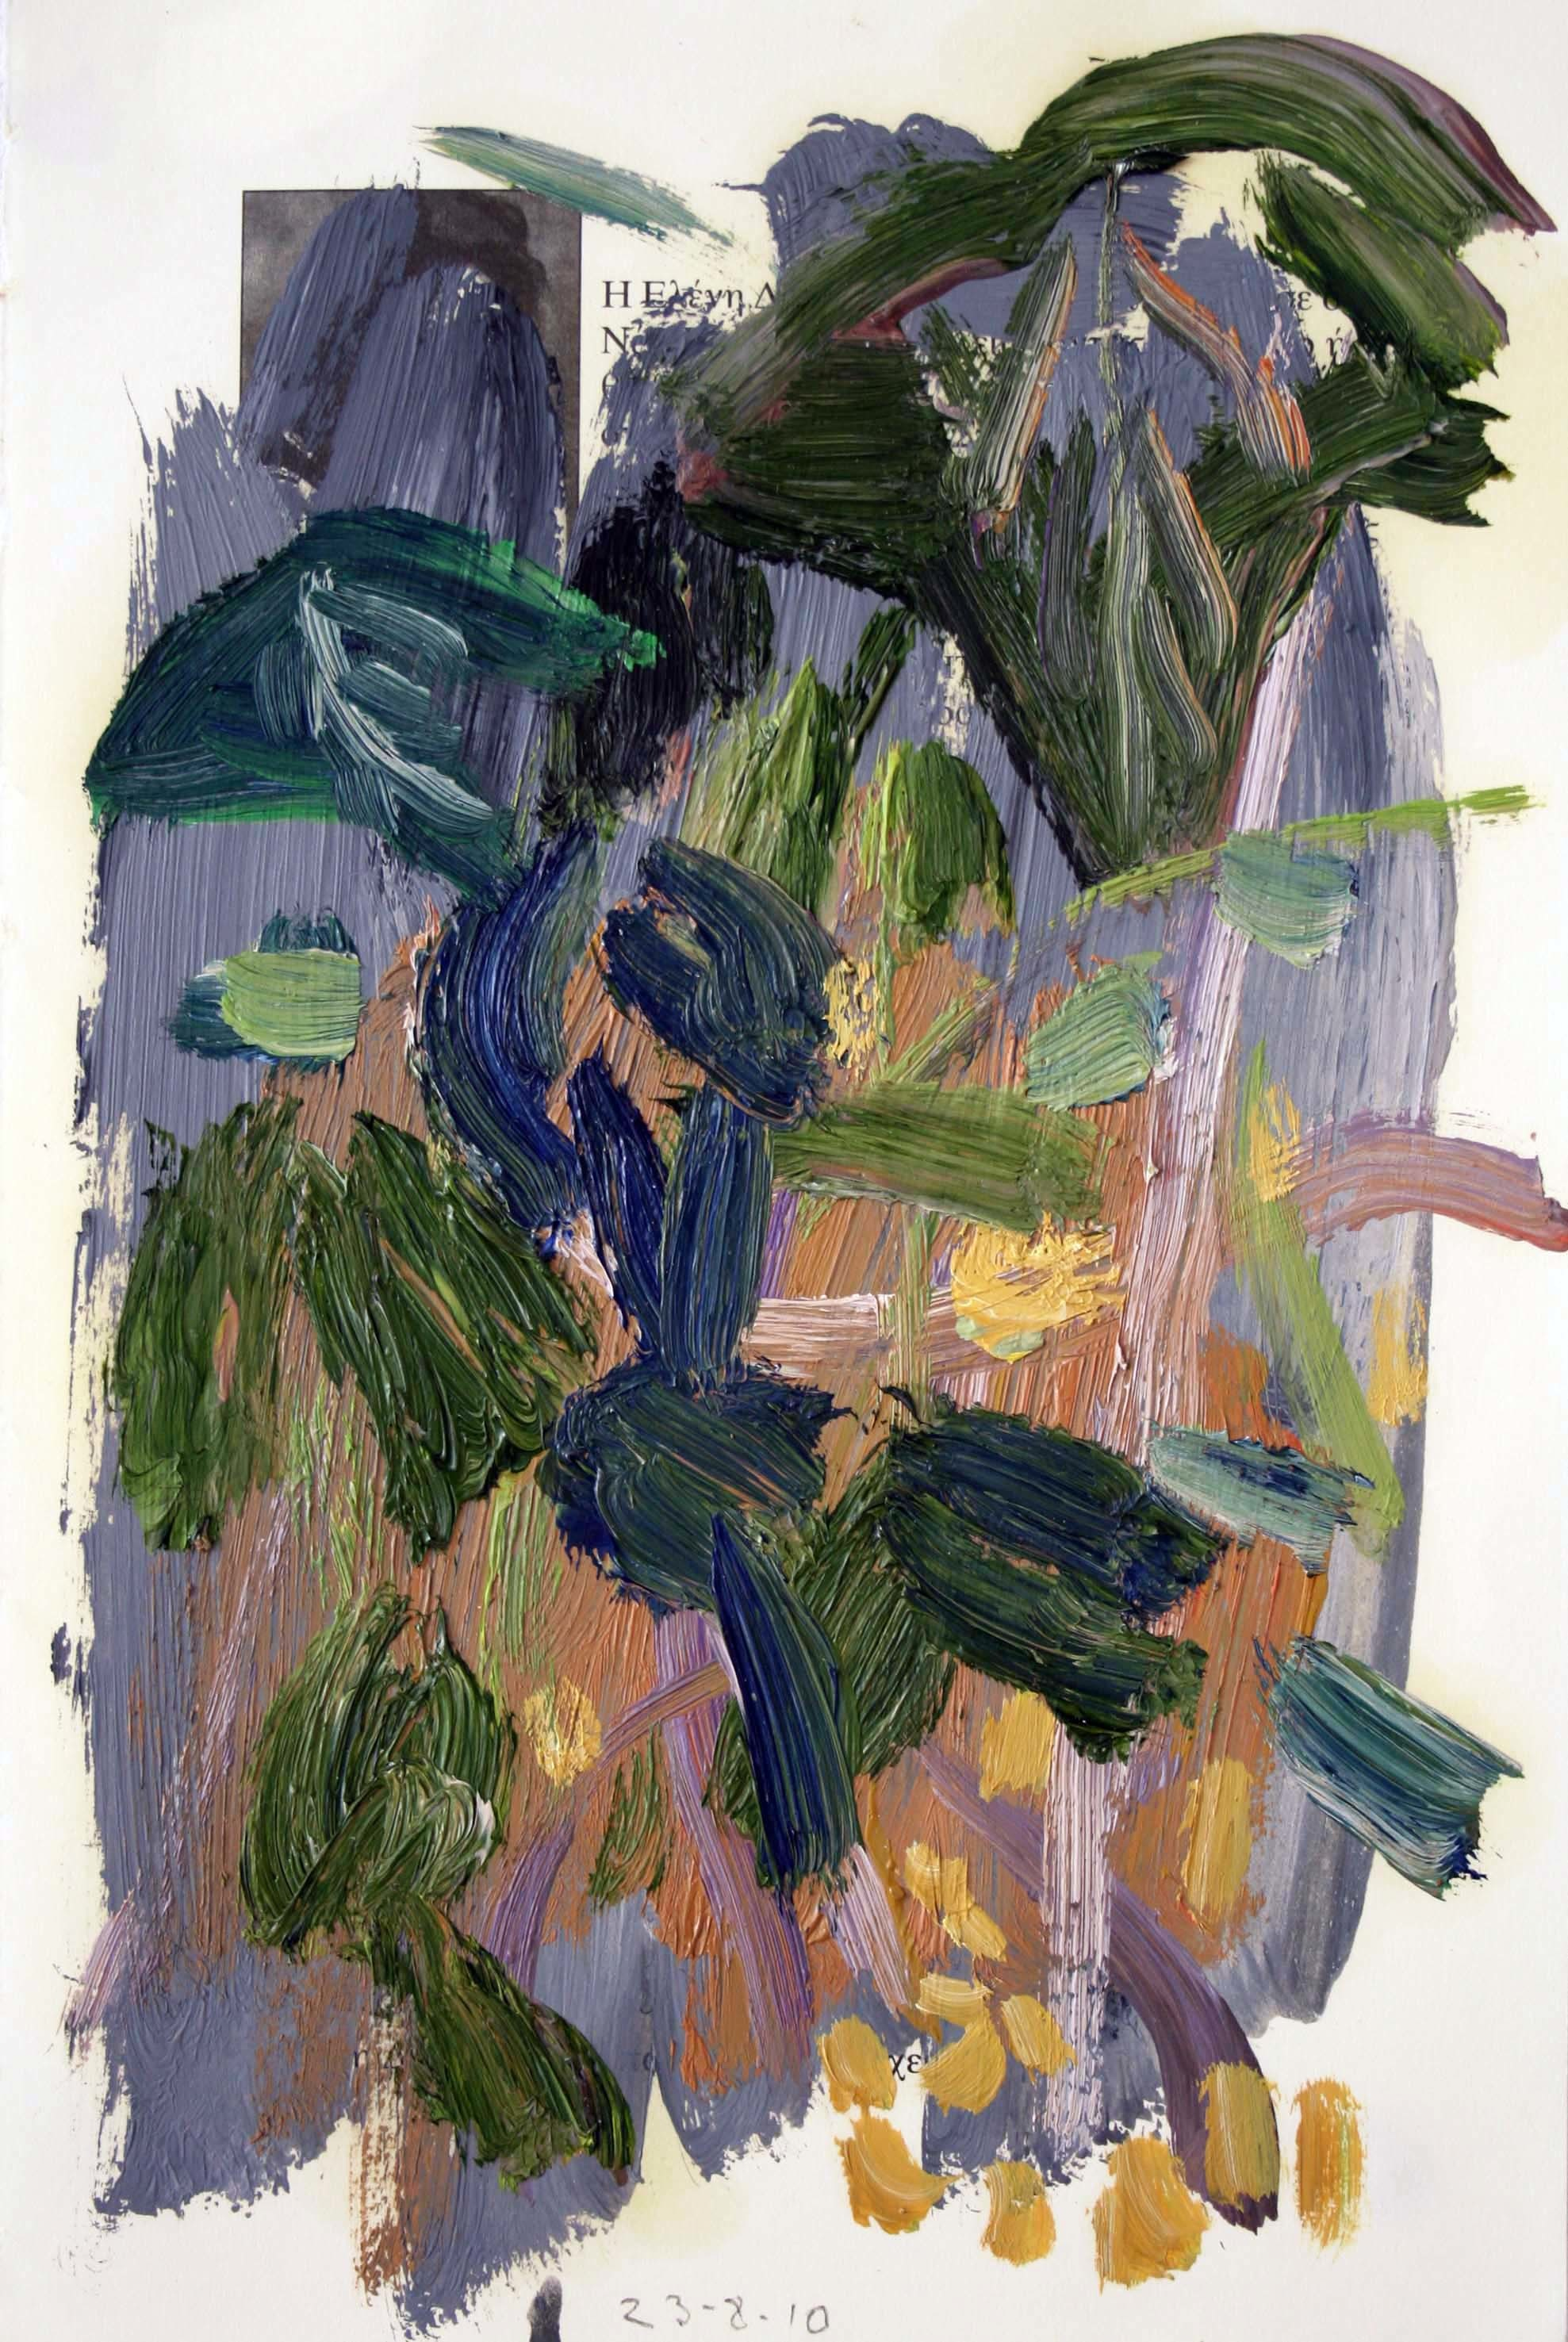 4 2010 Oil on paper 14x21cm   copy.jpg